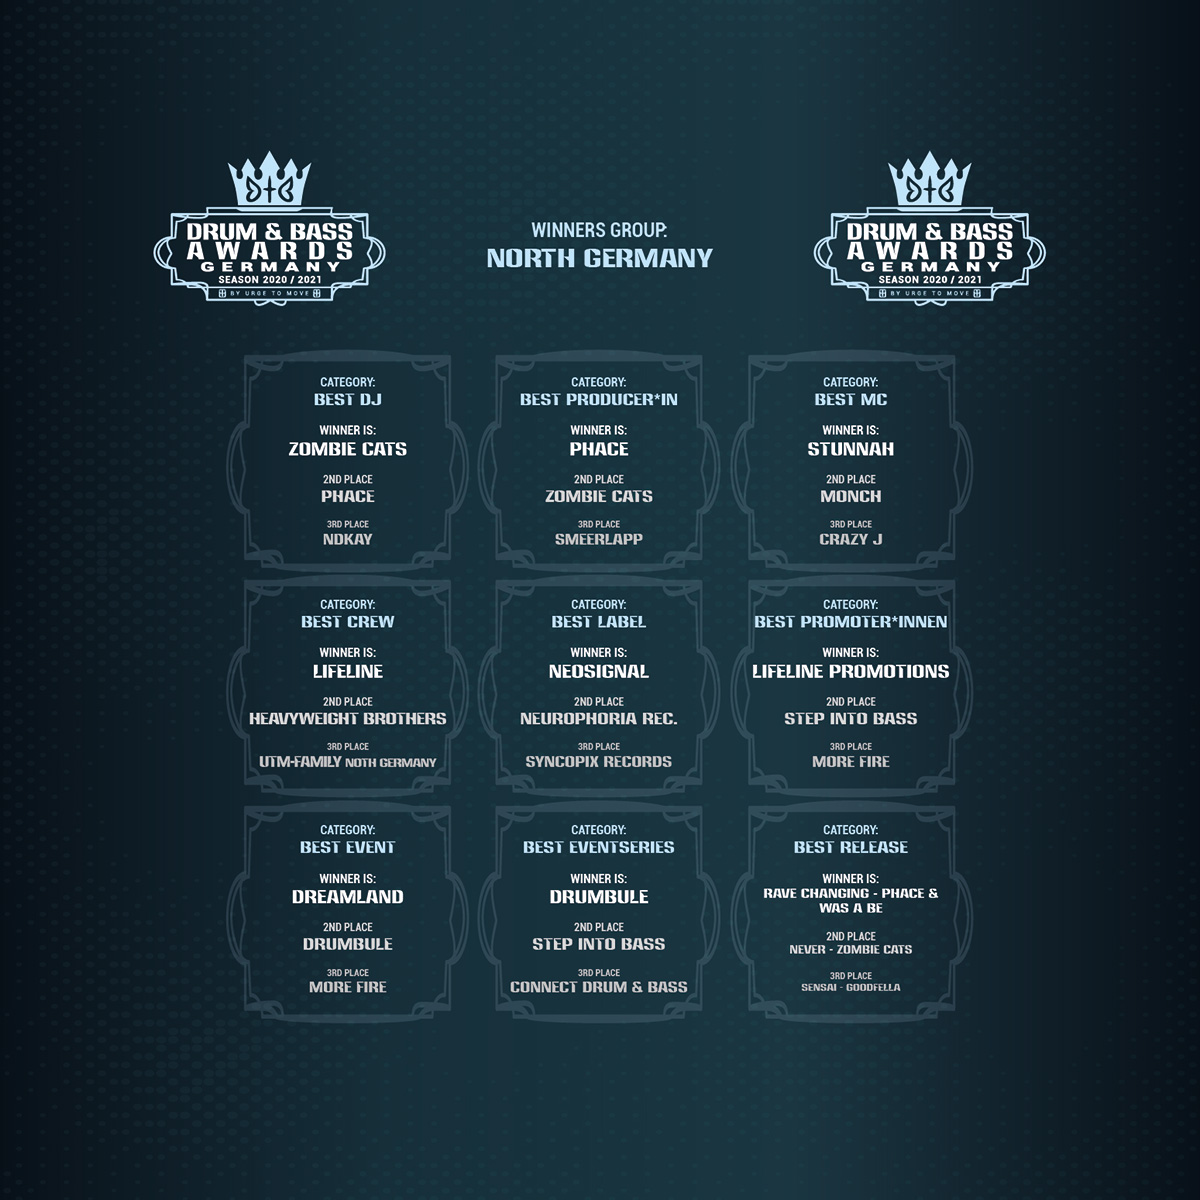 Drum and Bass Awards Germany - NORTH